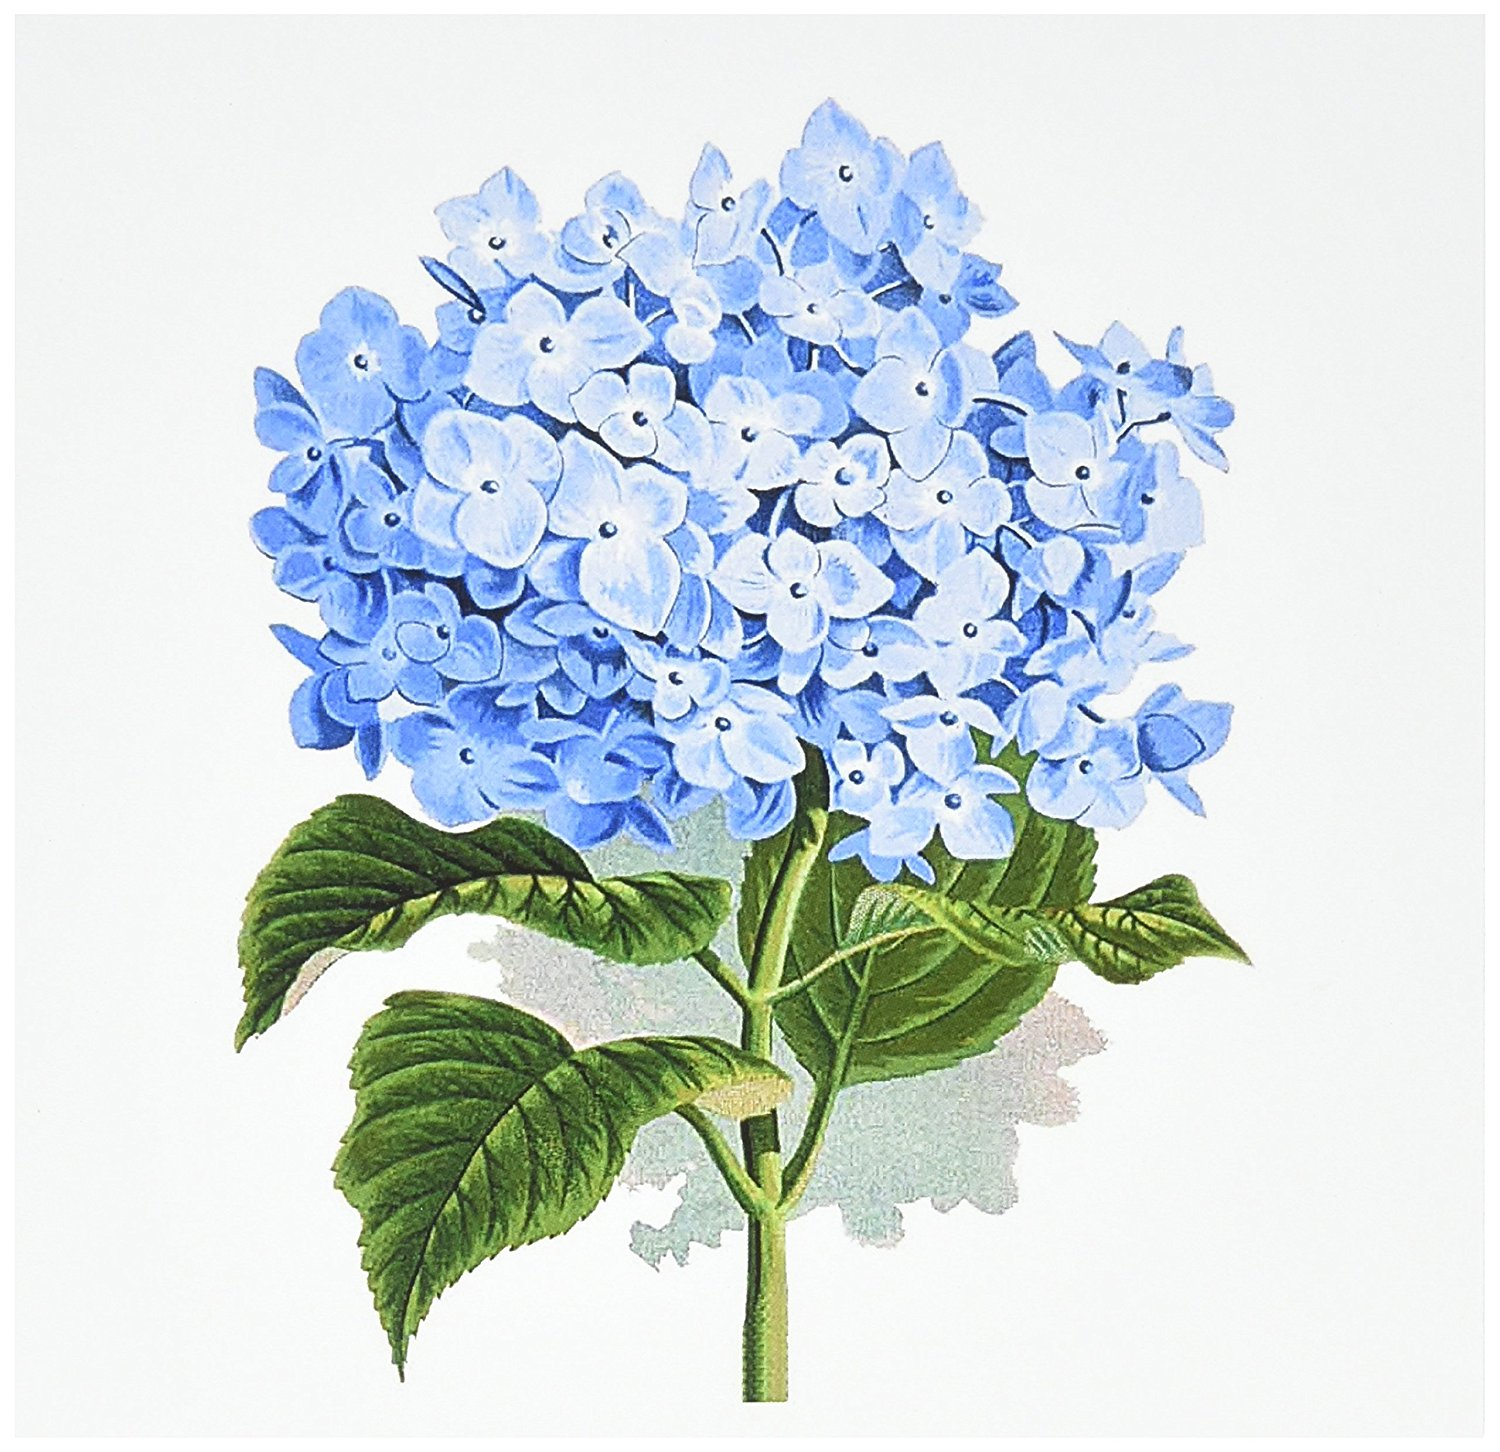 Cheap drawing board greeting cards find drawing board greeting get quotations 3drose blue hydrangea flowers vintage art floral drawing summery flowery spring antique m4hsunfo